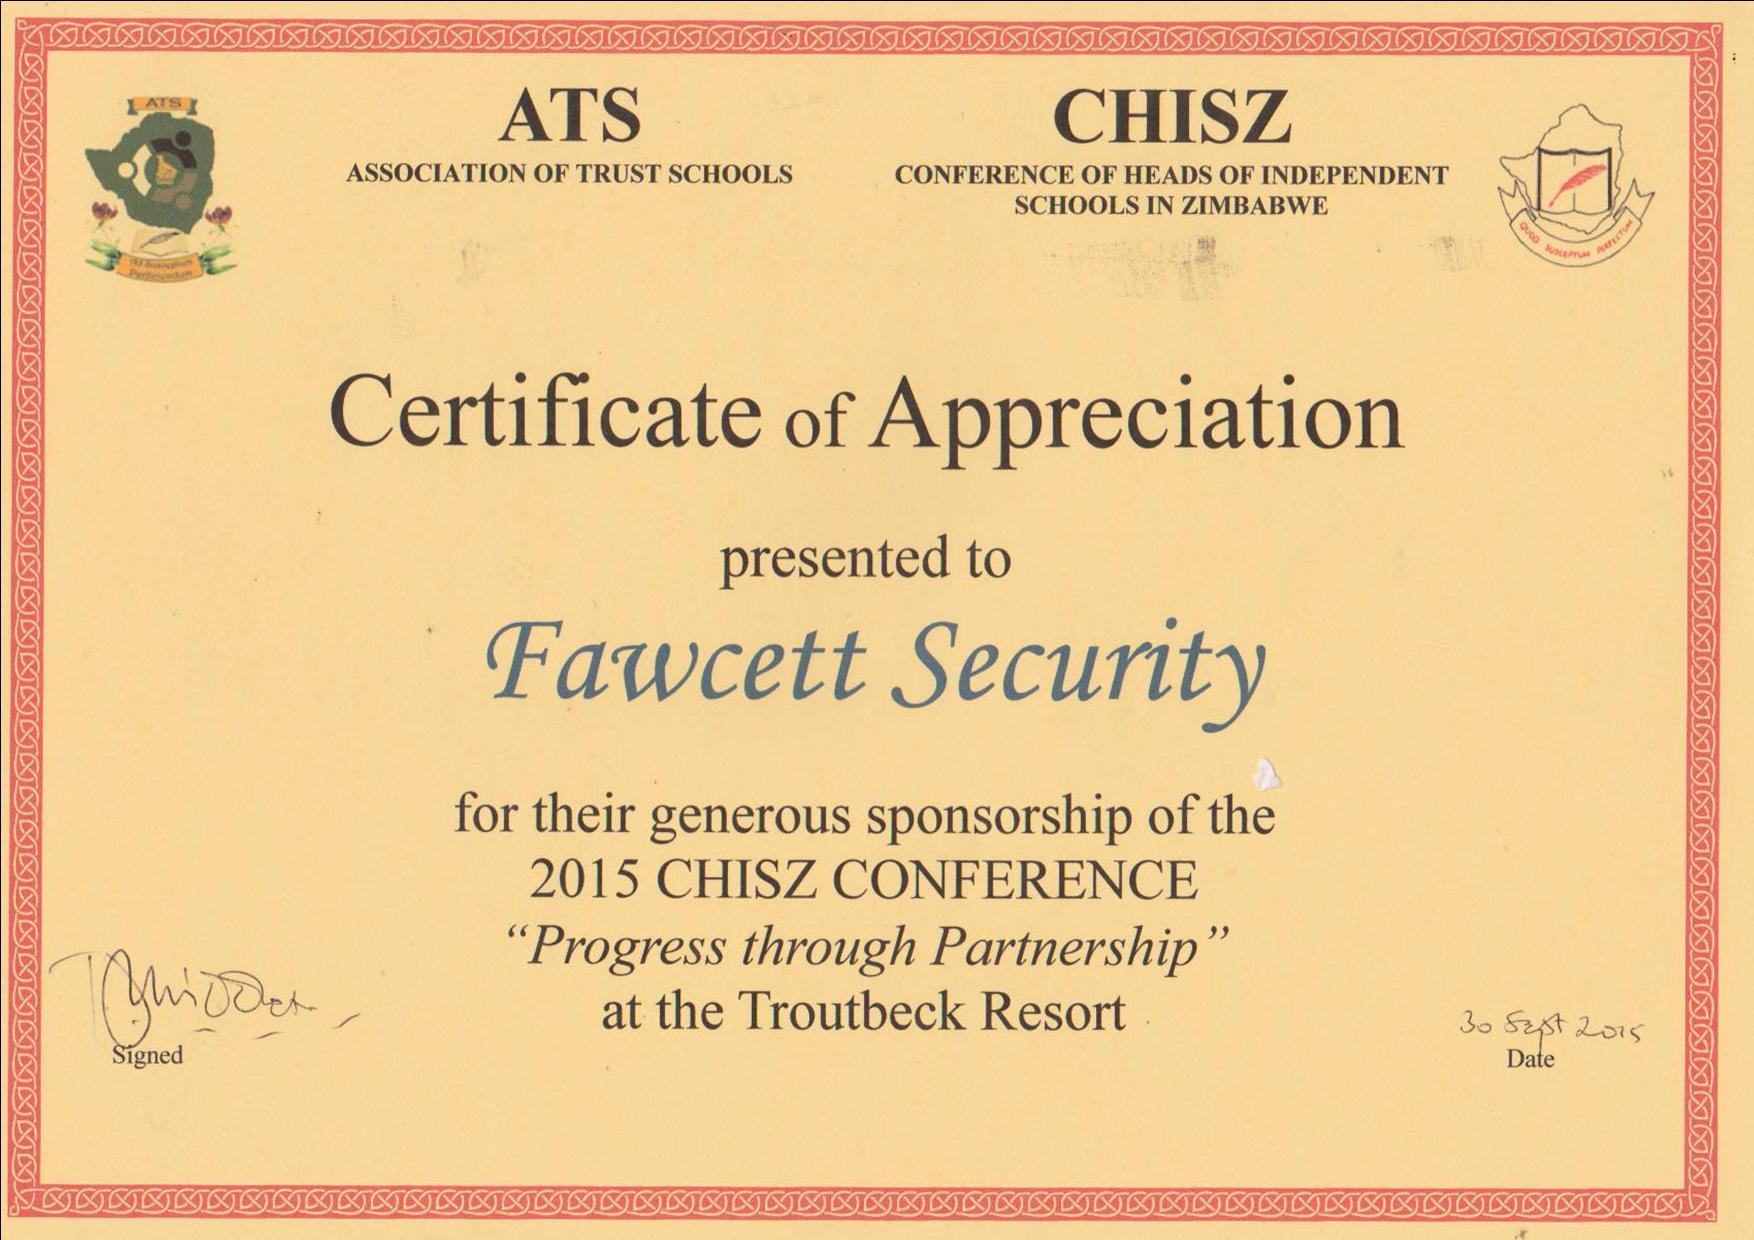 Conference of heads of independent schools in zimbabwe chisz certificate of appreciation awarded to fawcett security on the 1st of october 2015 by conference of heads of independent schools in zimbabwe chisz yelopaper